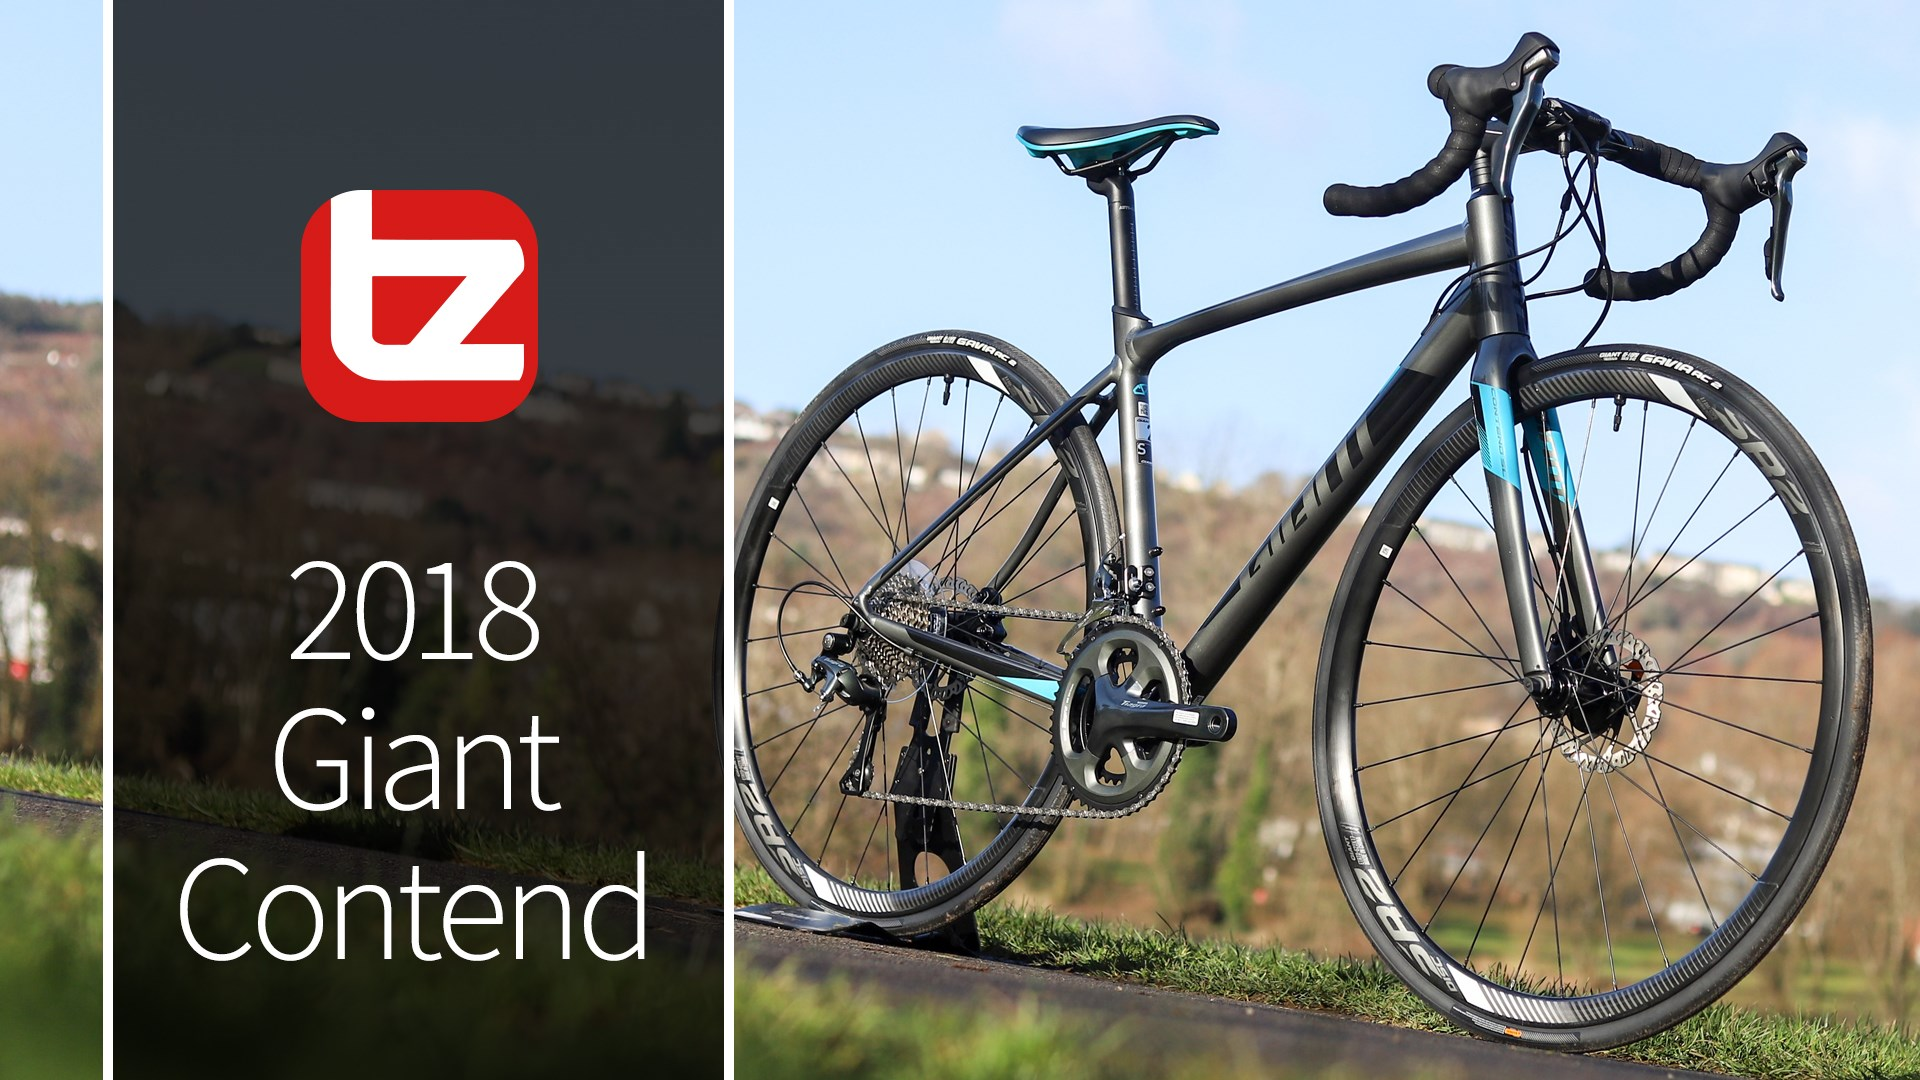 Giant Contend 2018 Range Review